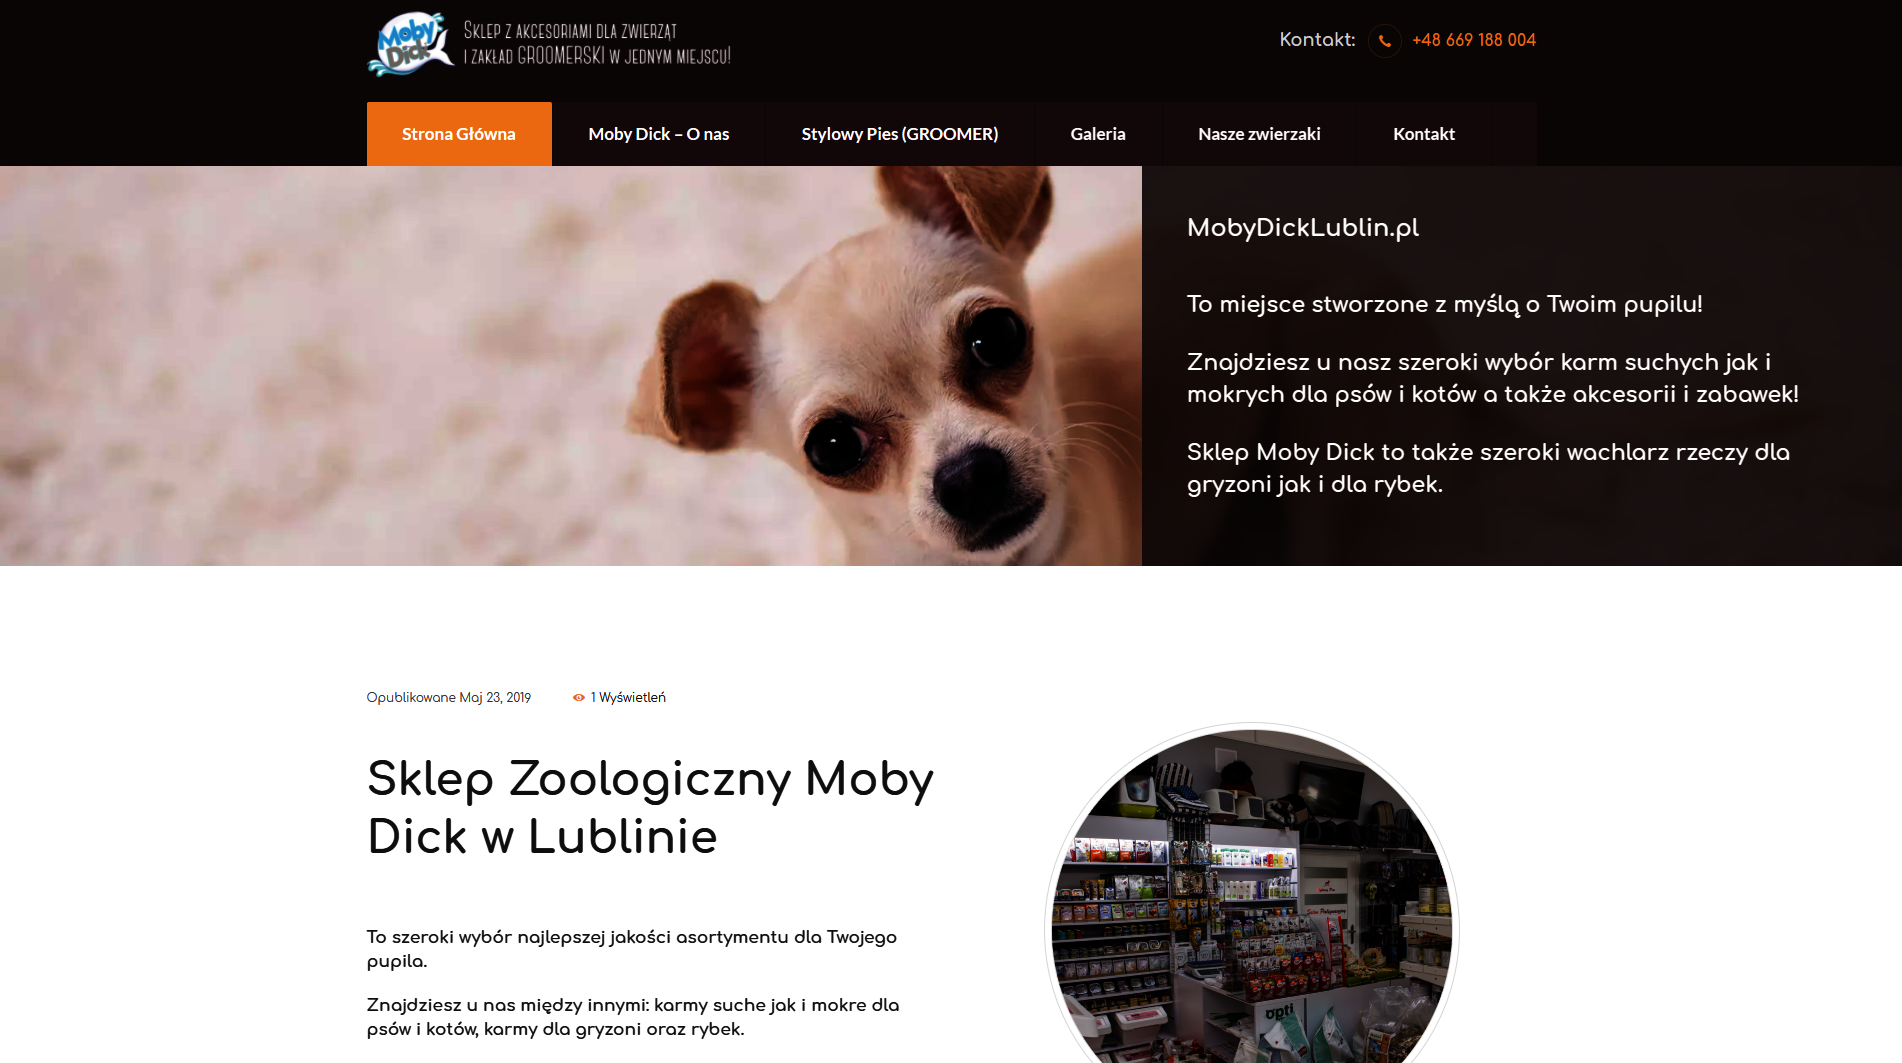 moby dick lublin